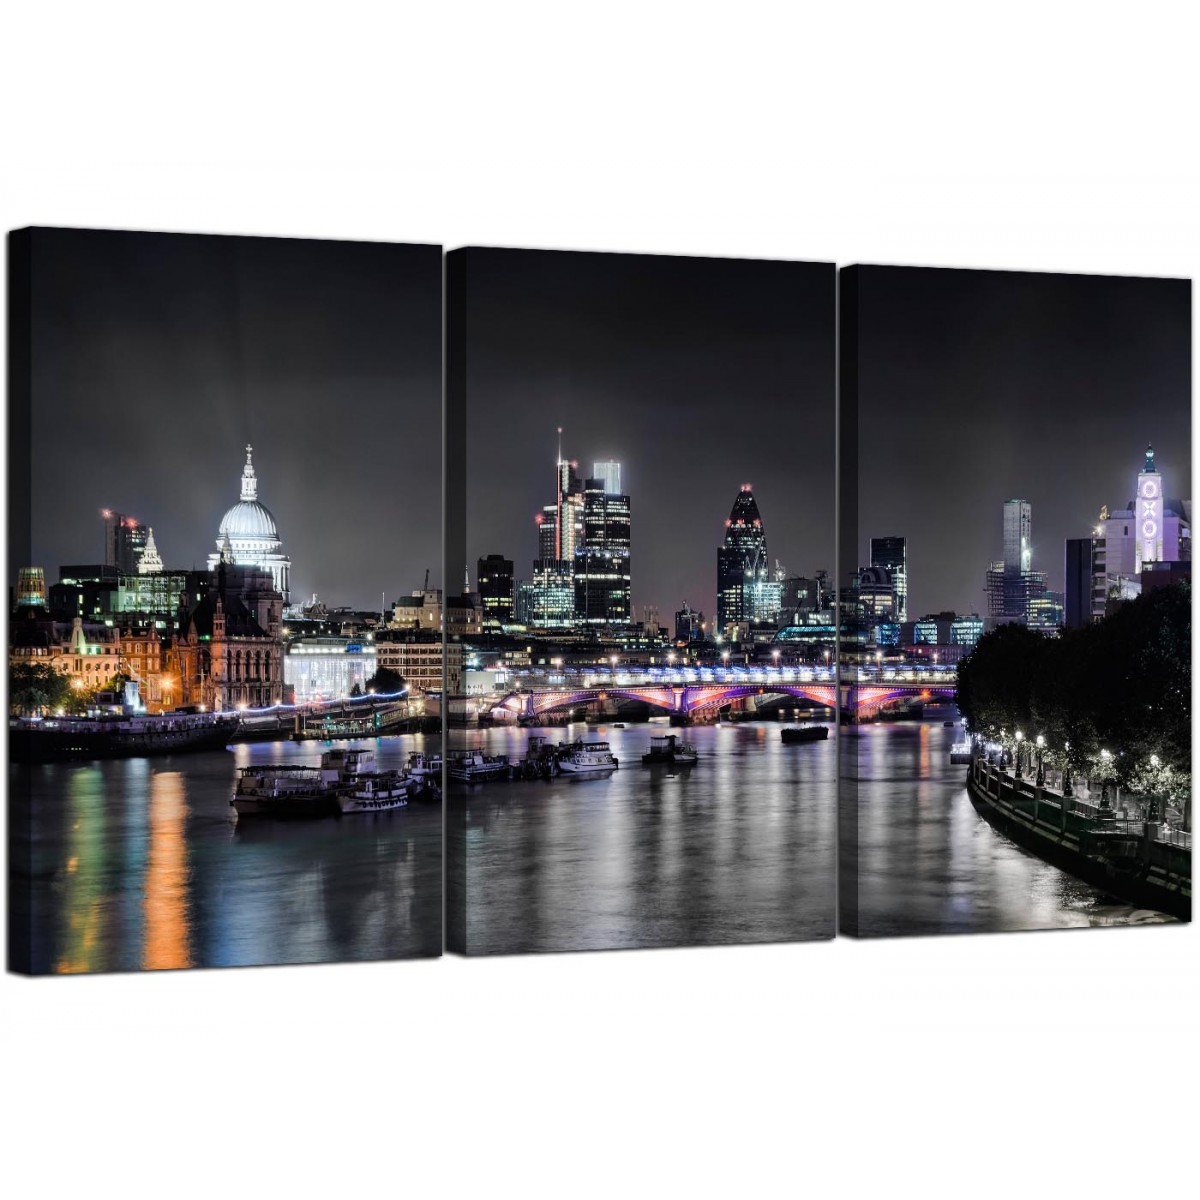 white and black sofa bed gunstig big kaufen cheap london skyline at night canvas art 3 panel for your ...